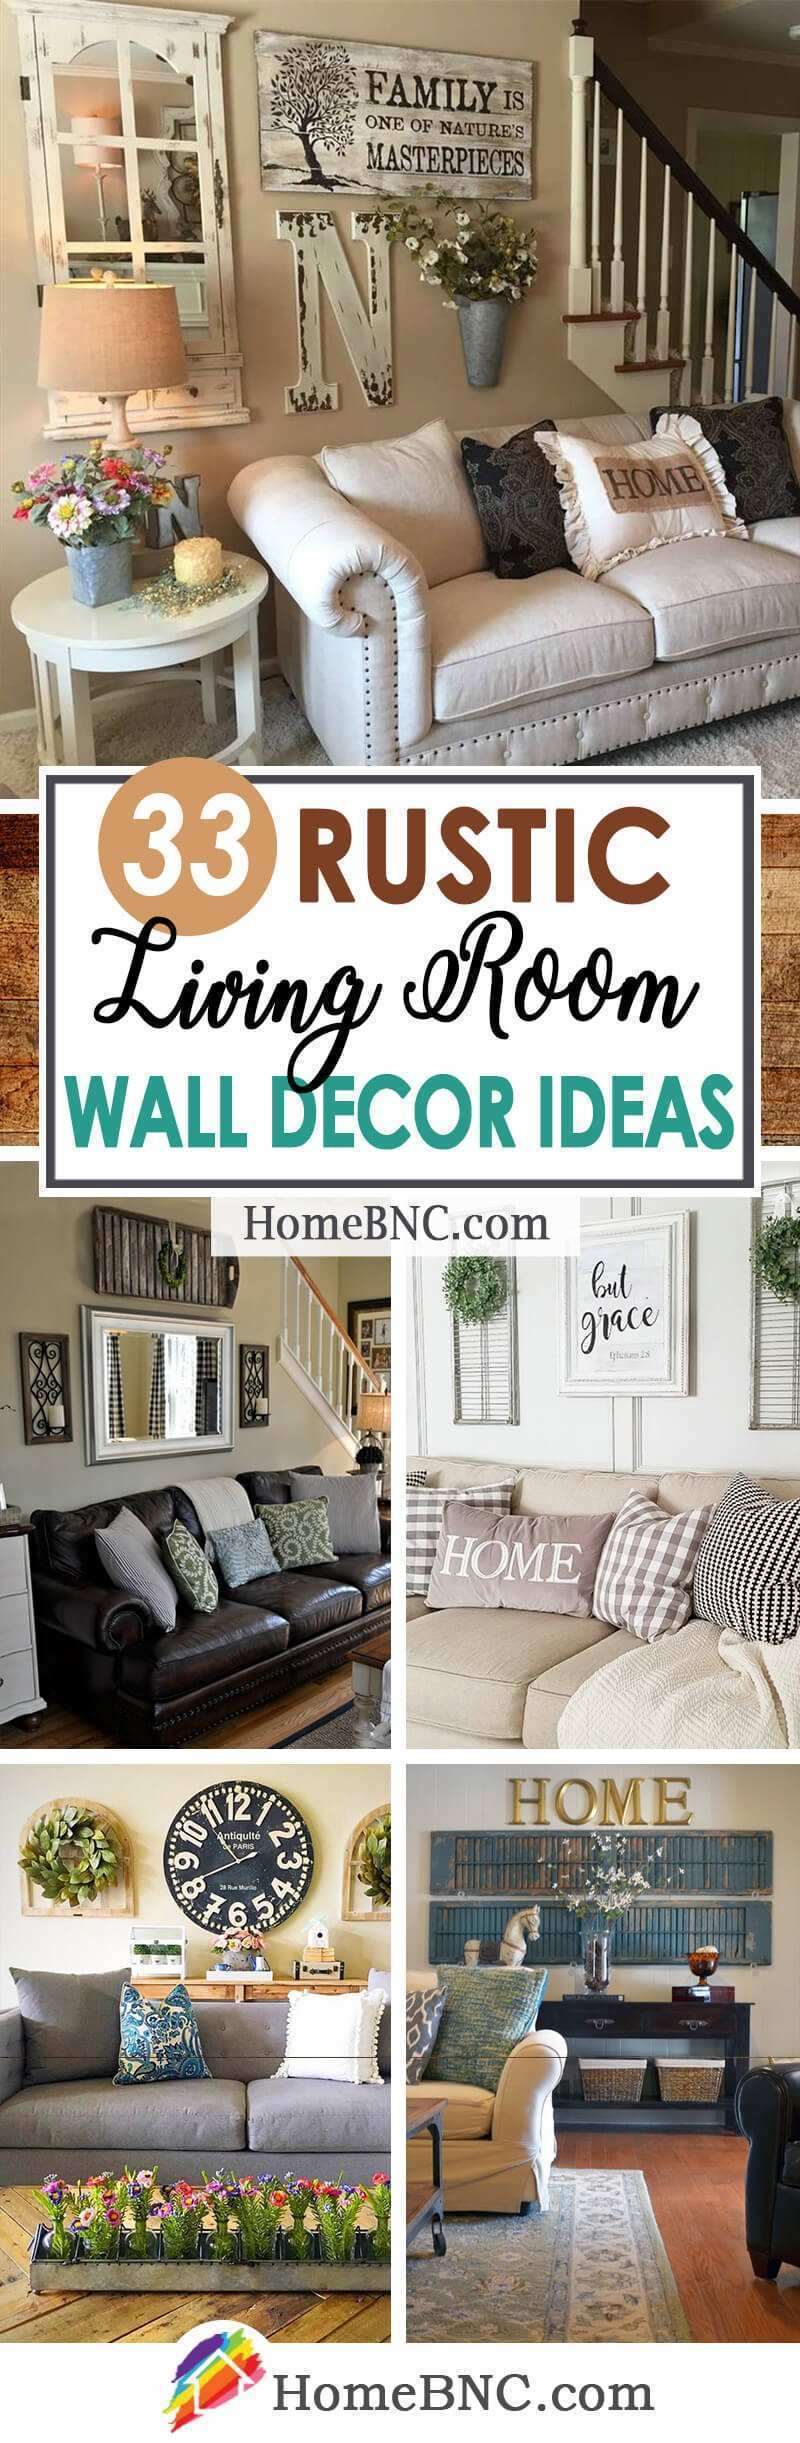 33 Best Rustic Living Room Wall Decor Ideas and Designs for 2018